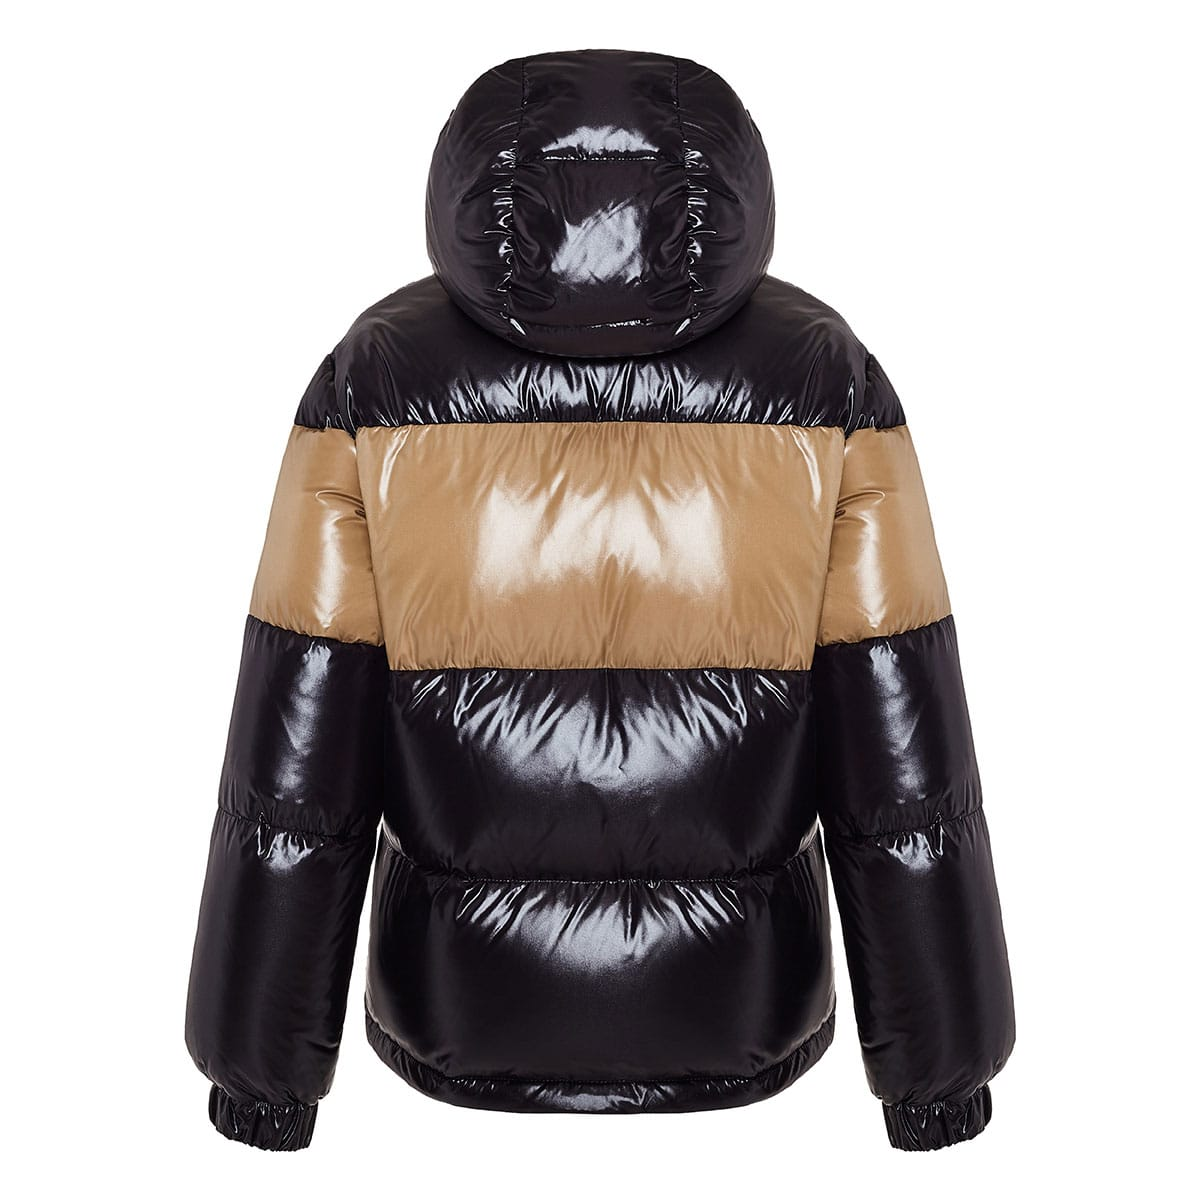 Gary down-quilted puffer jacket